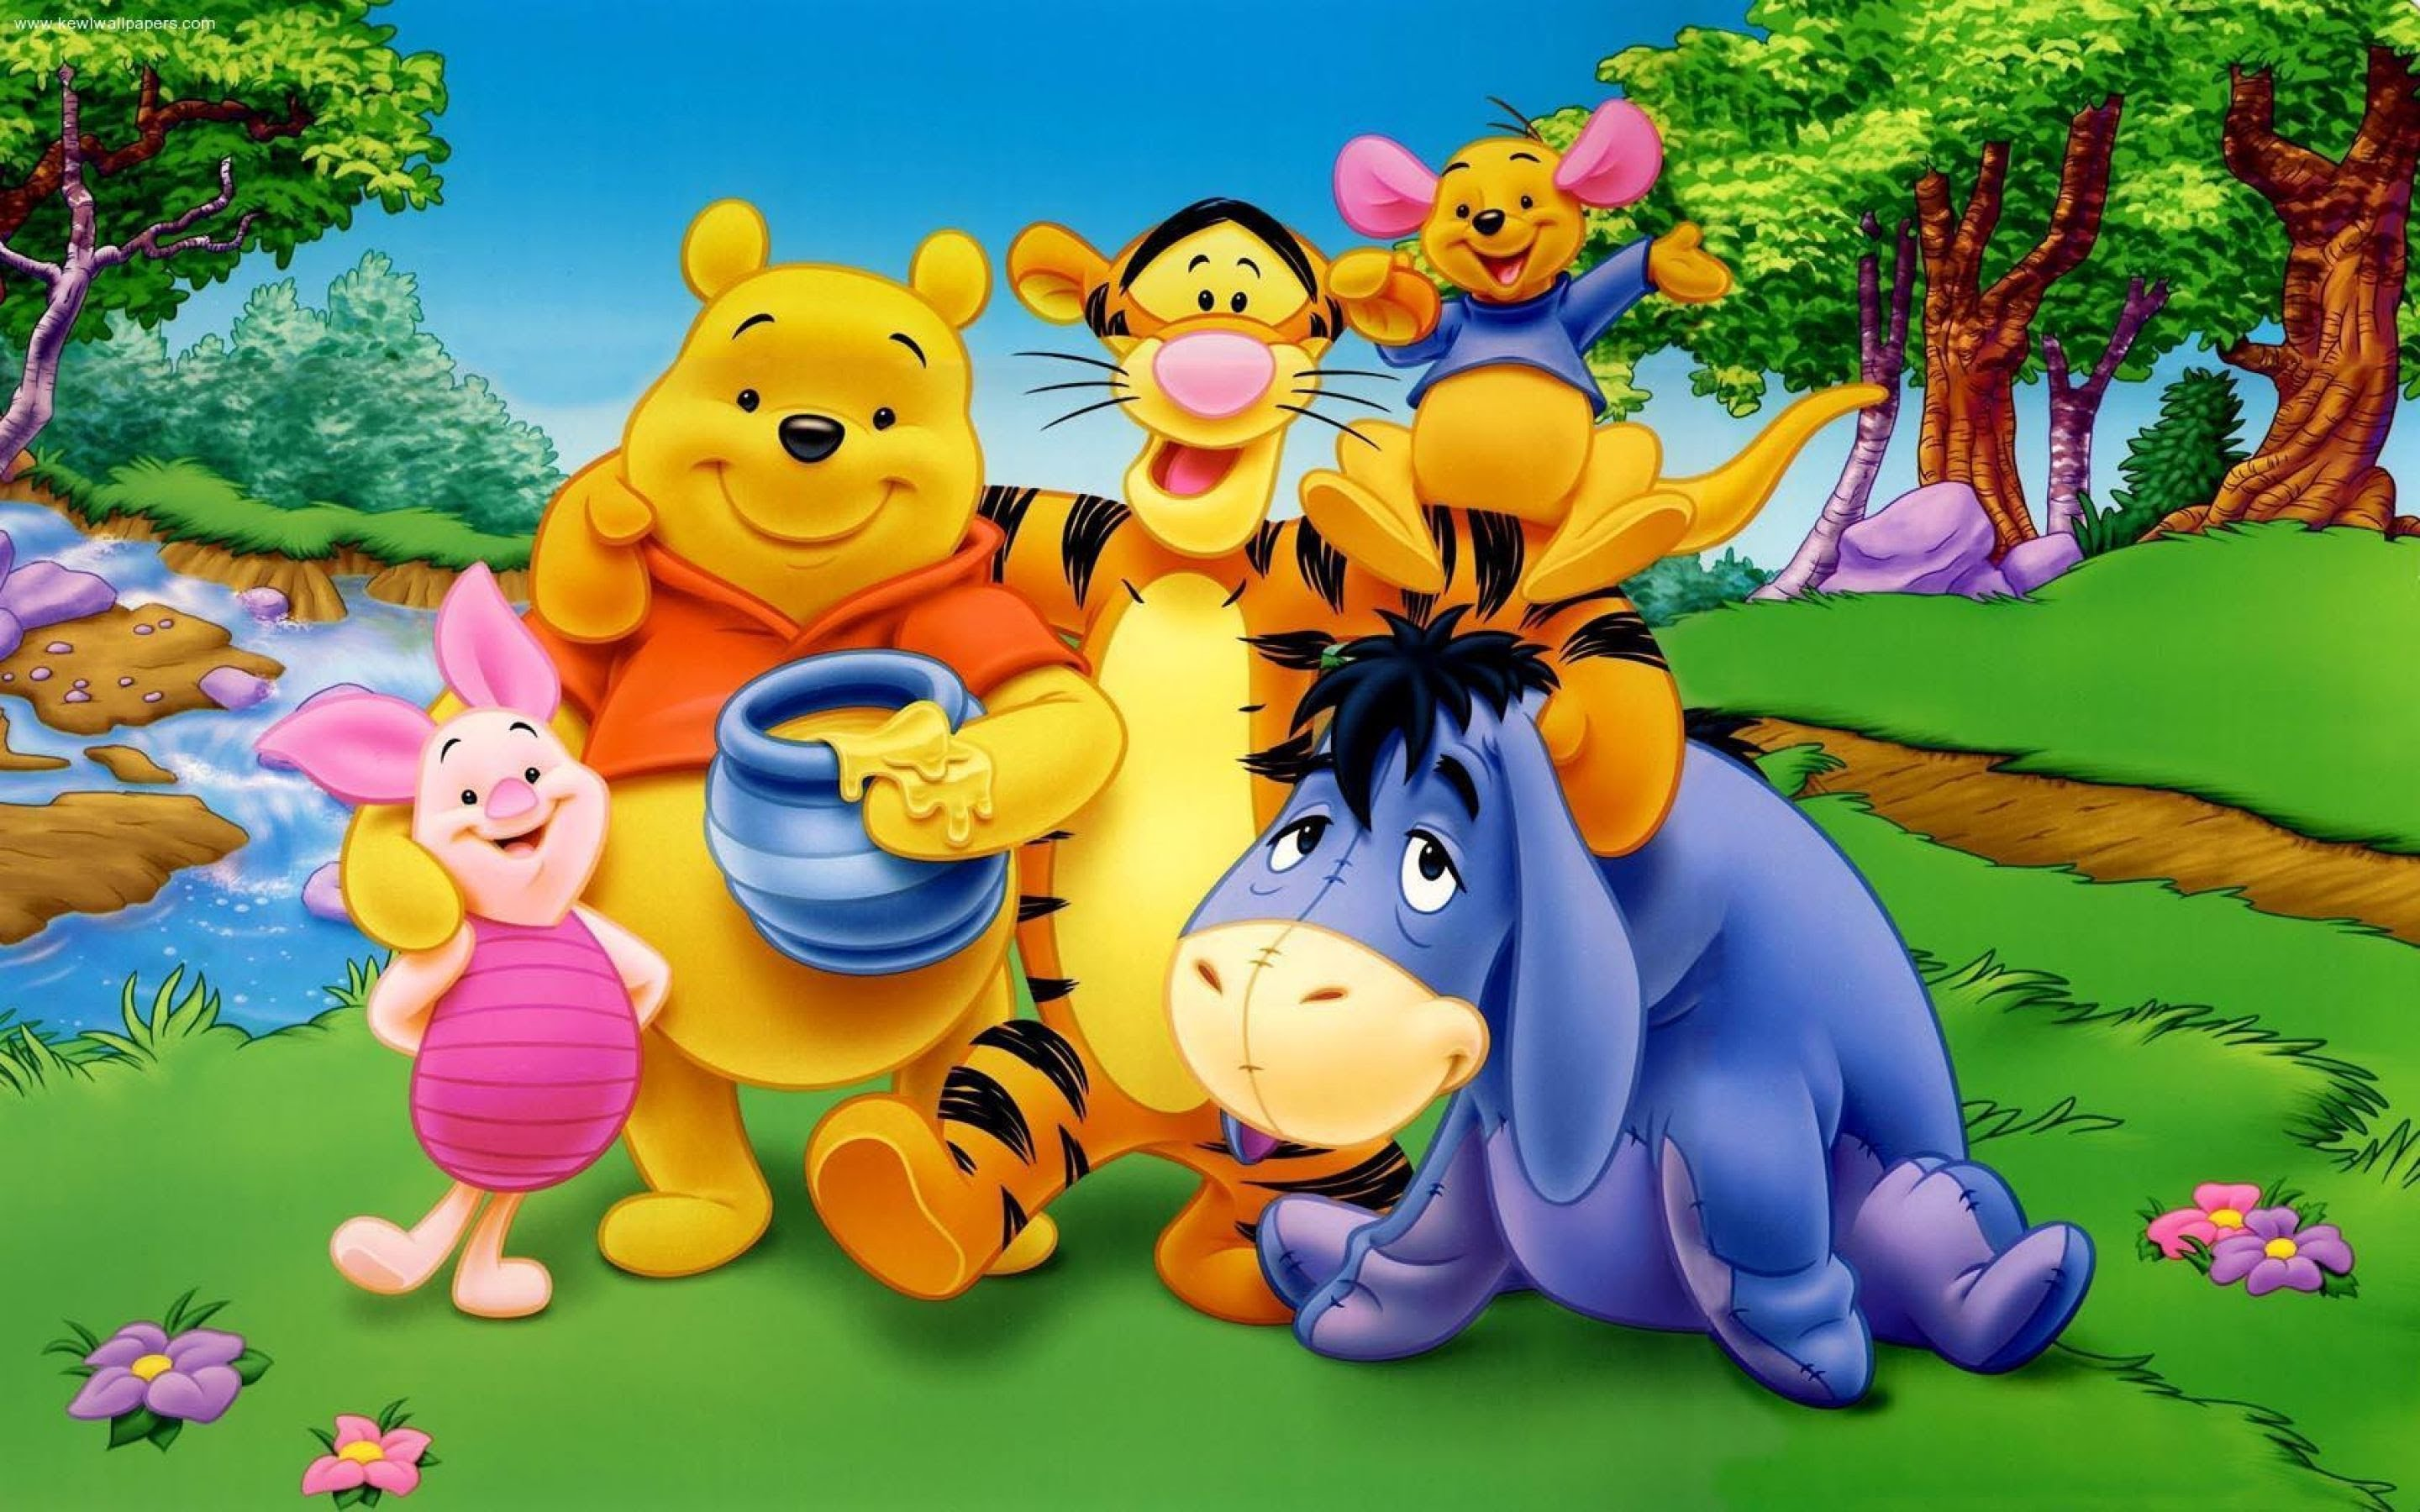 Winnie The Pooh Full Movie - Winnie The Pooh Full Episodes new 2013